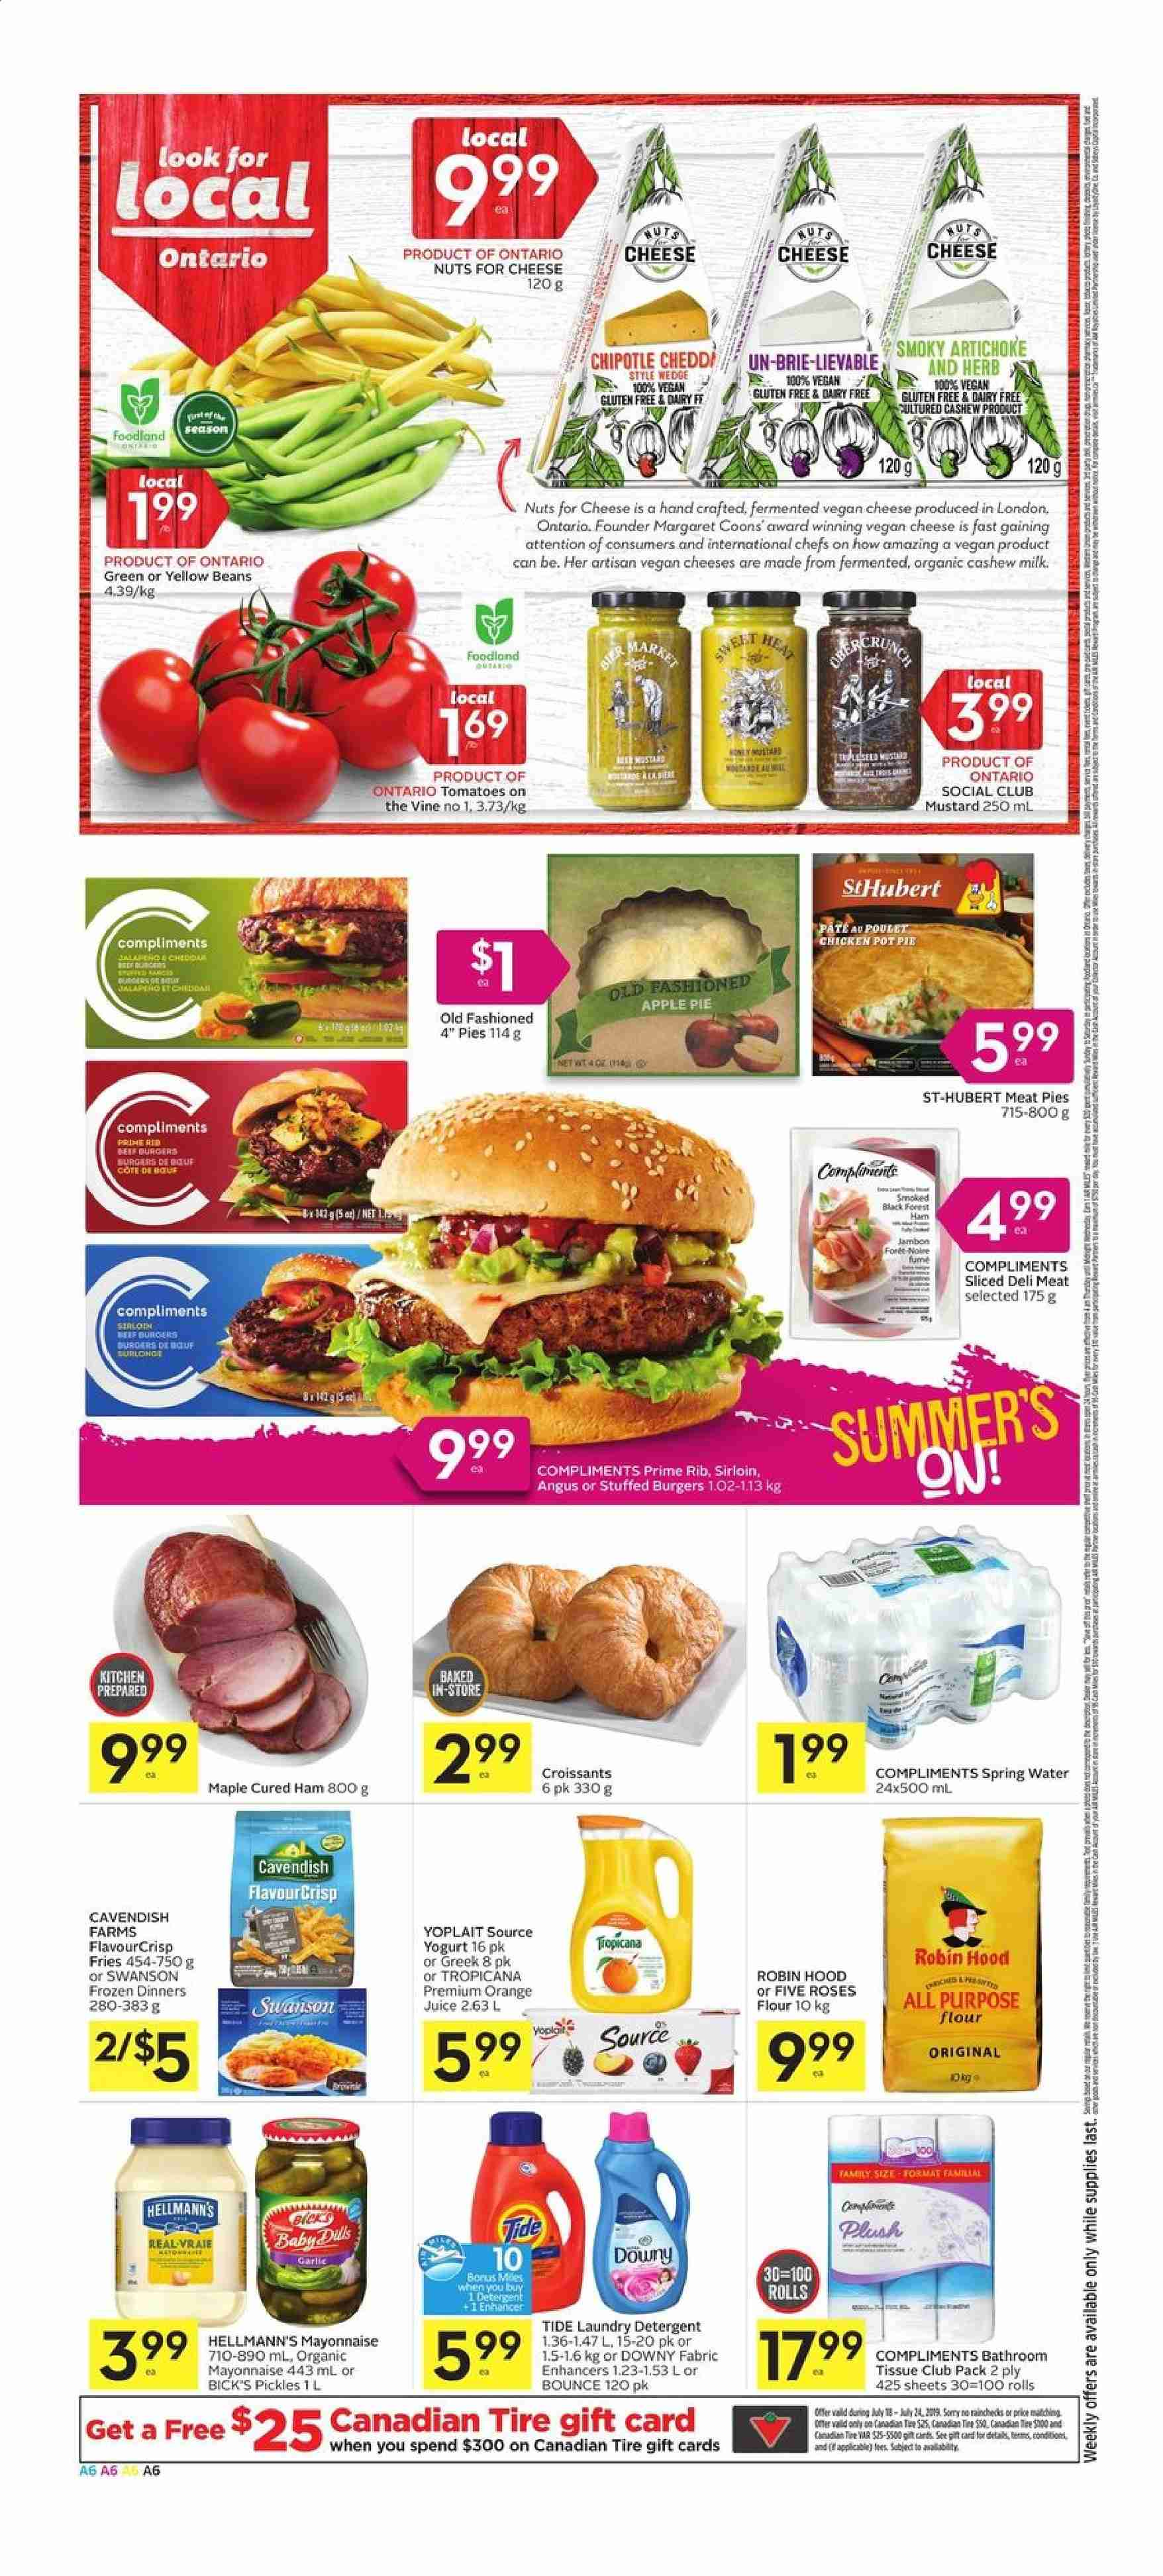 Foodland Flyer  - July 18, 2019 - July 24, 2019. Page 6.